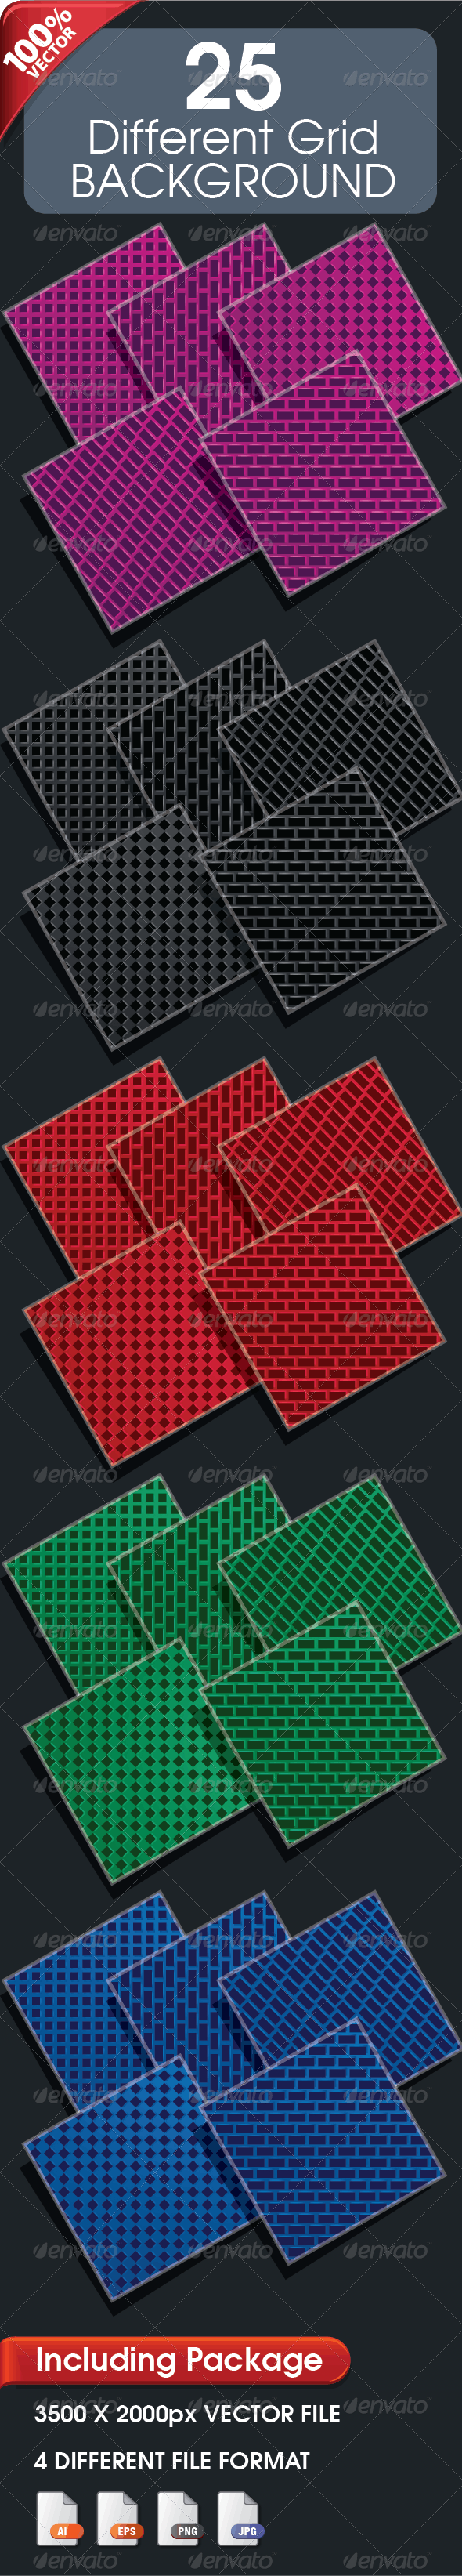 25 Different Grid Background - Backgrounds Decorative